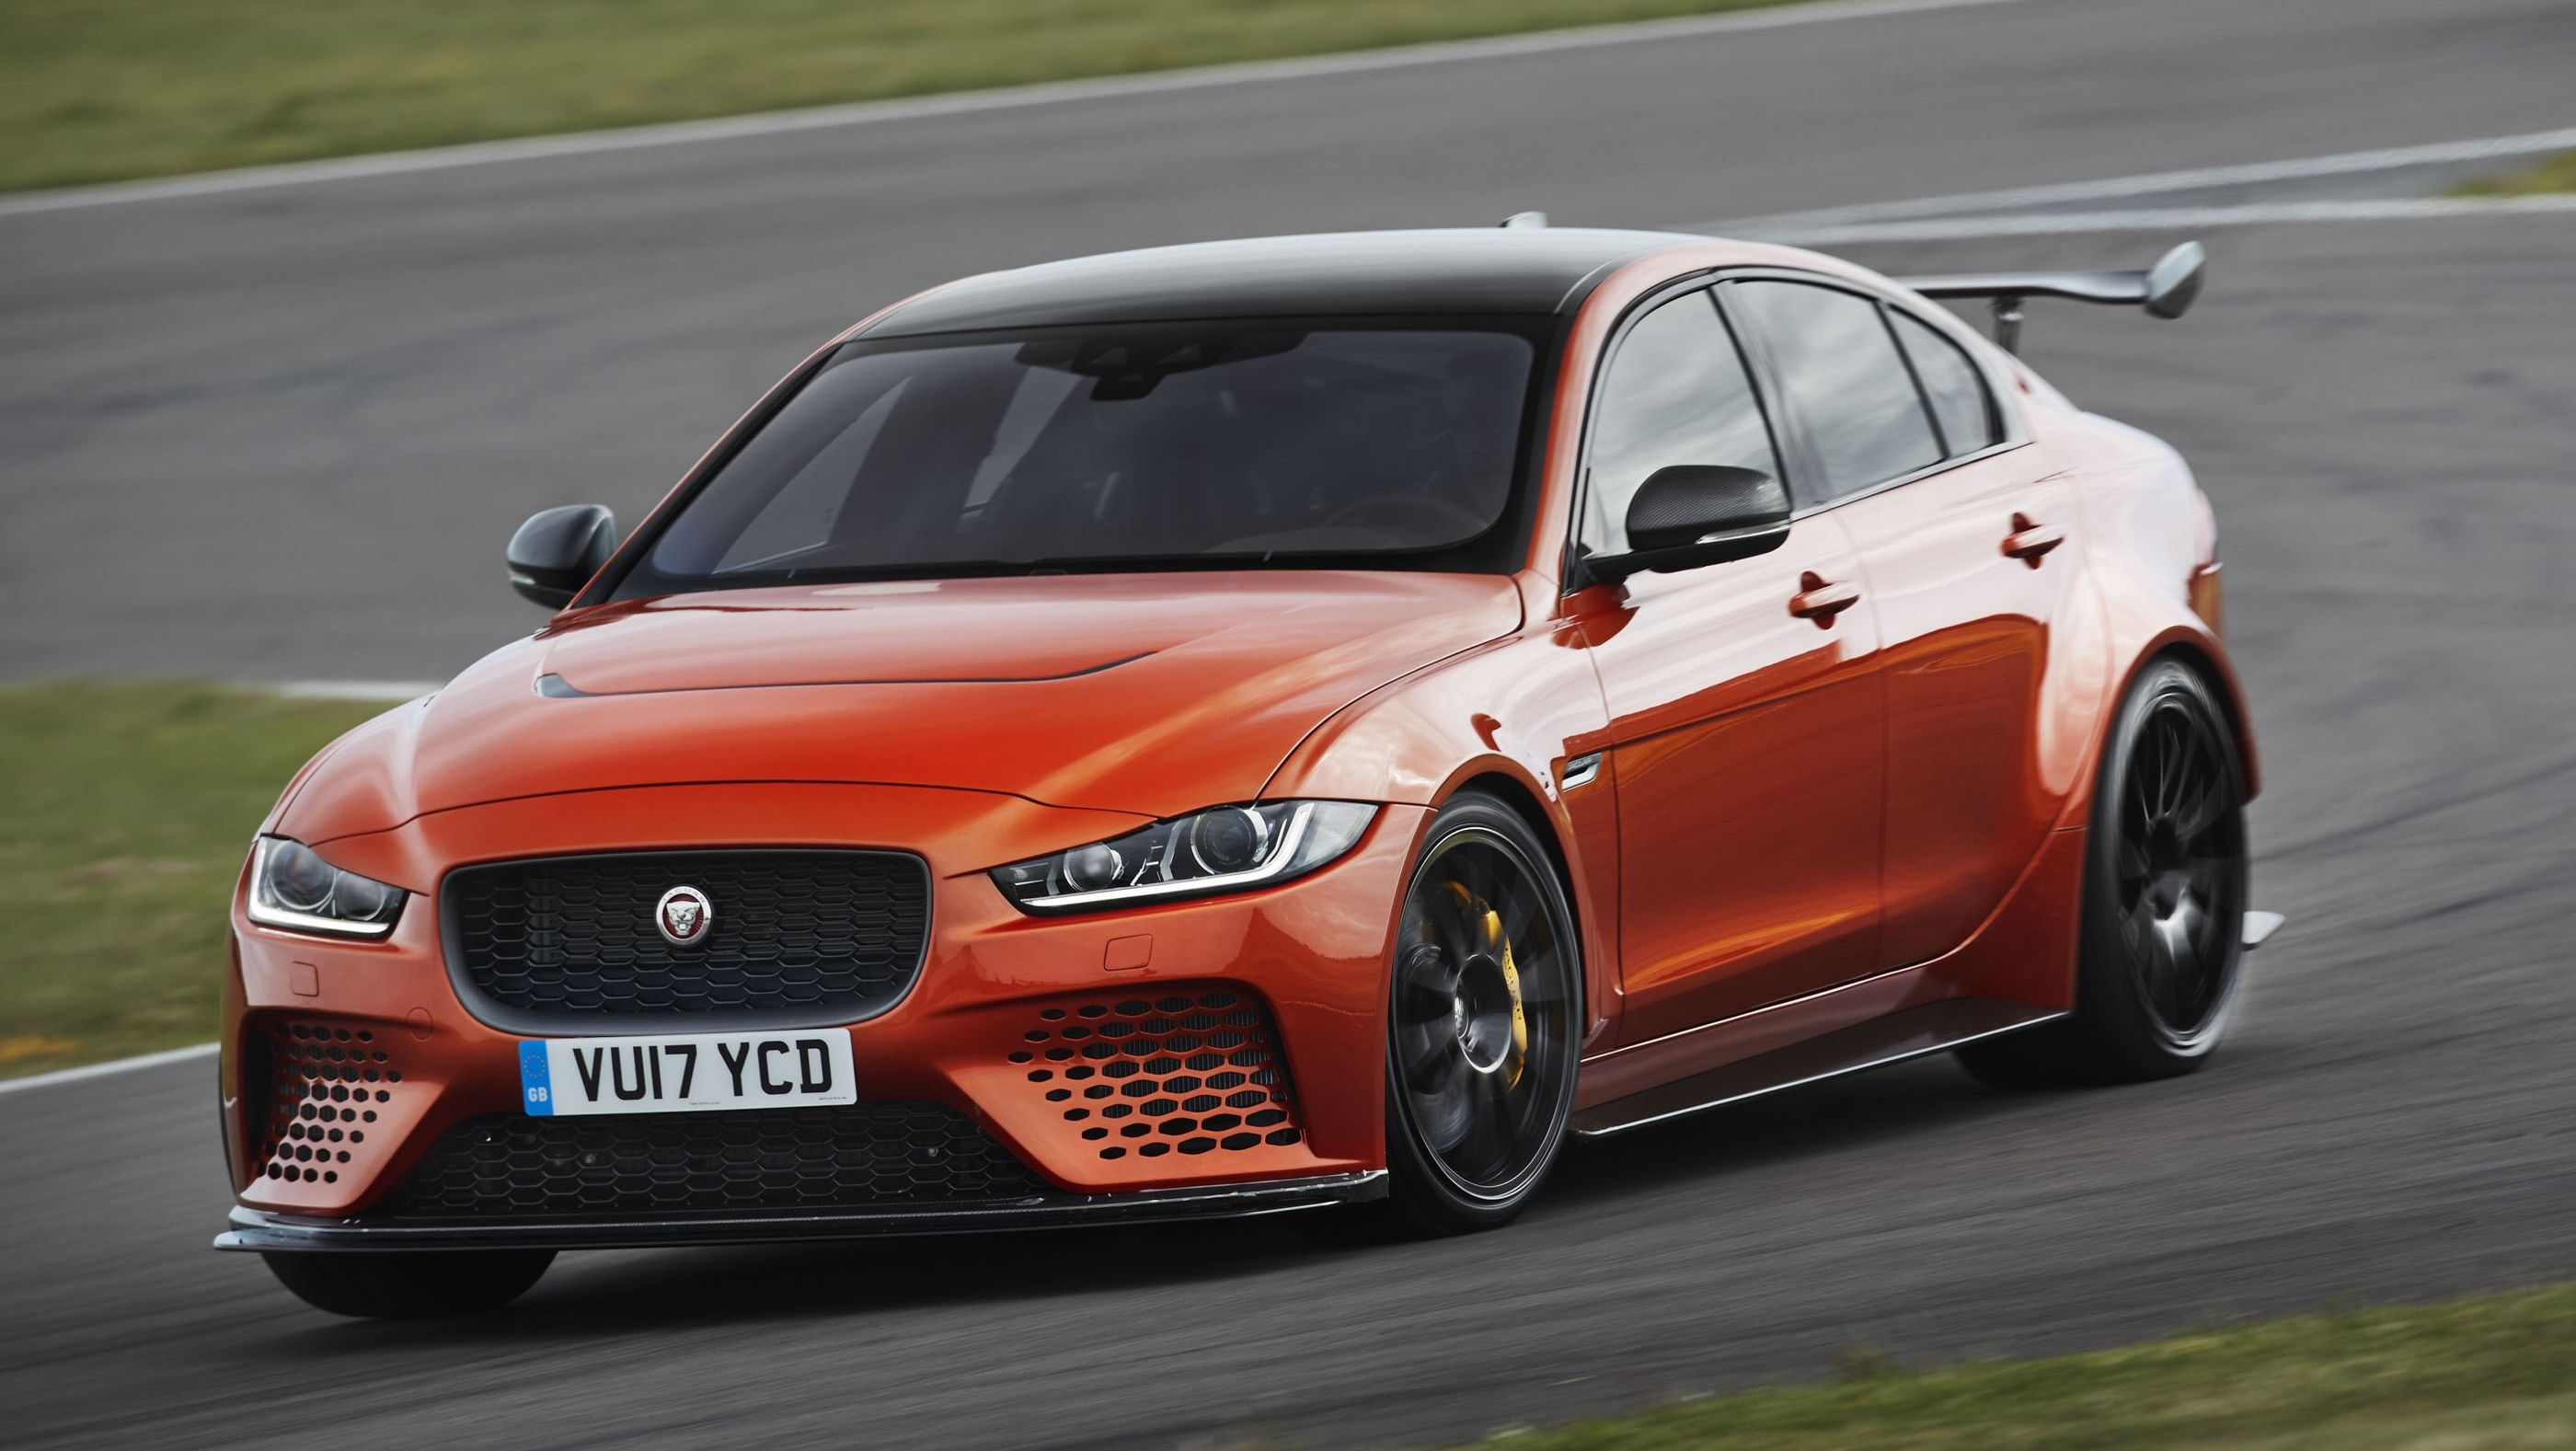 Jaguar Drops Plans For An Xe Svr Leaving The Project 8 As The Only Xe To Sport A V 8 Engine Top Speed Jaguar Xe Awd Sports Cars Jaguar